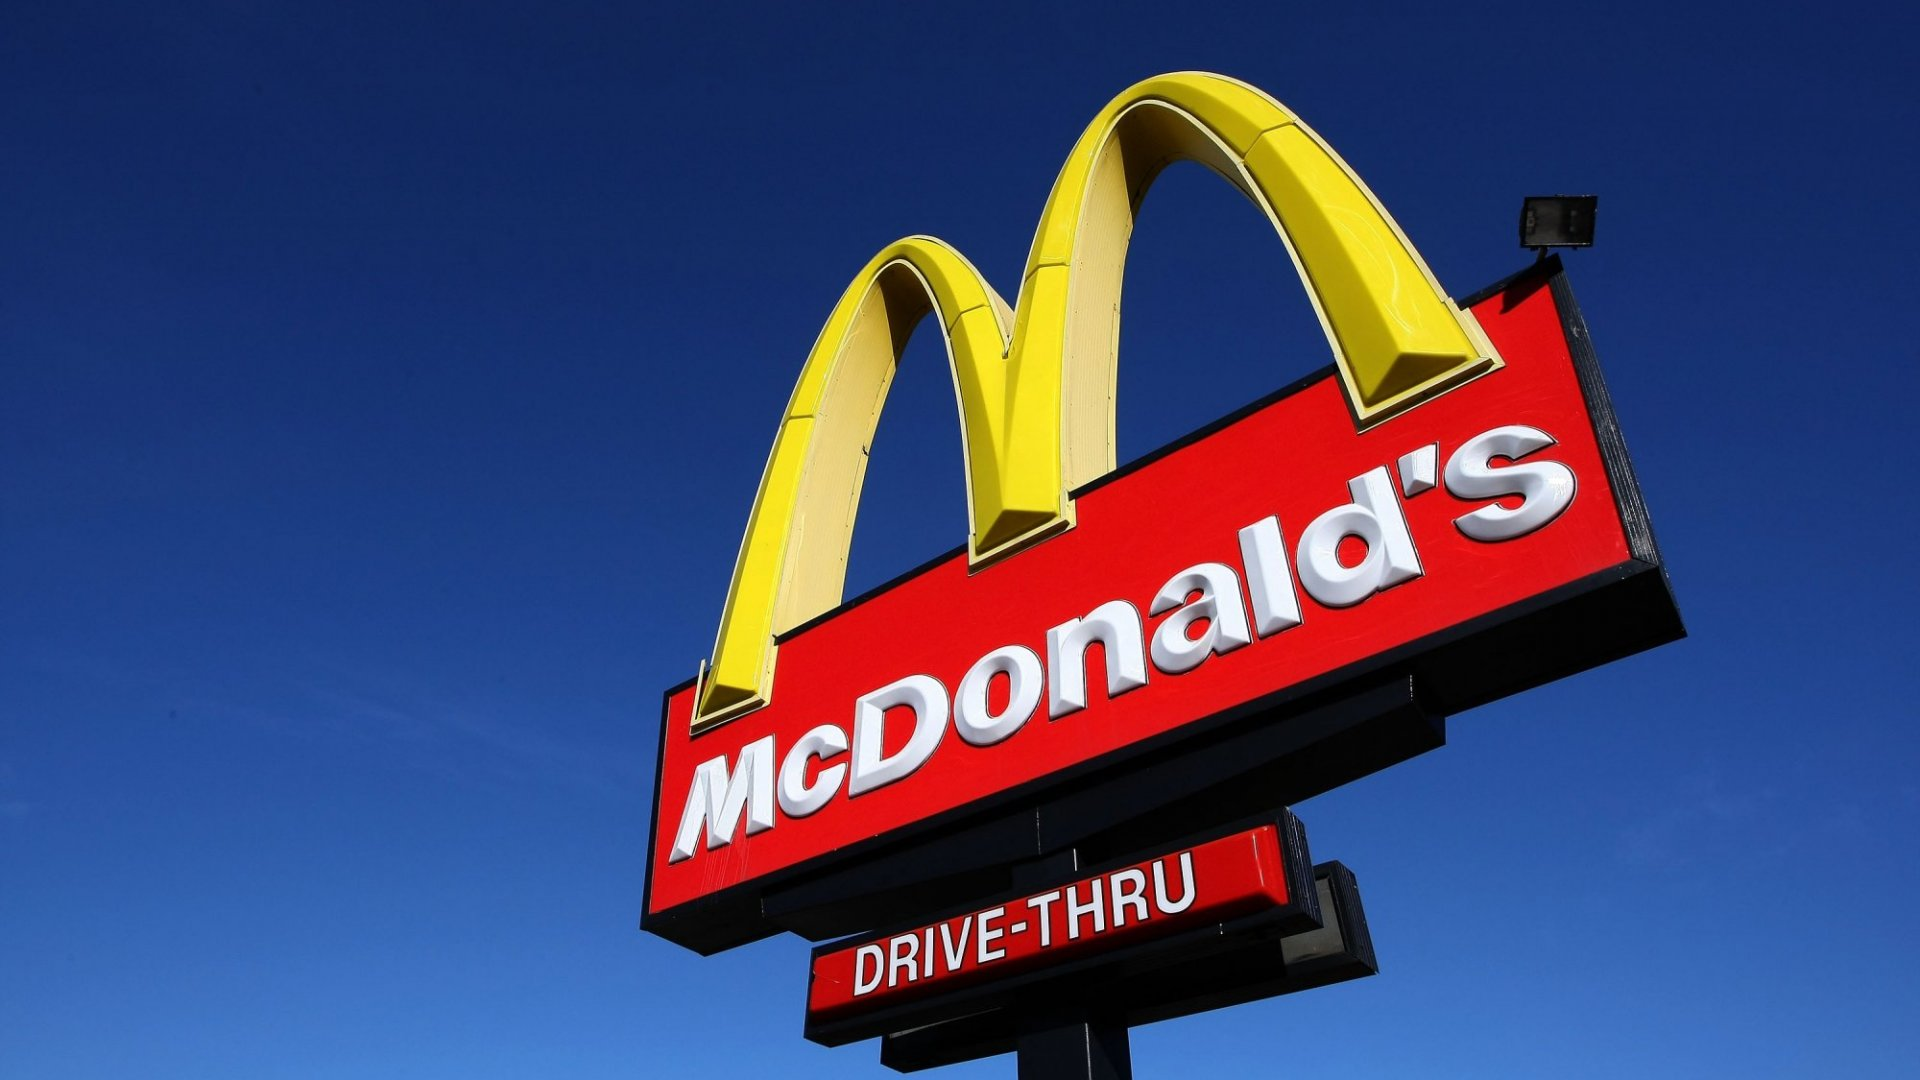 McDonald's, Applebee's, Panera Bread and Others Just Agreed Not To Do This Sneaky Thing to Their Employees